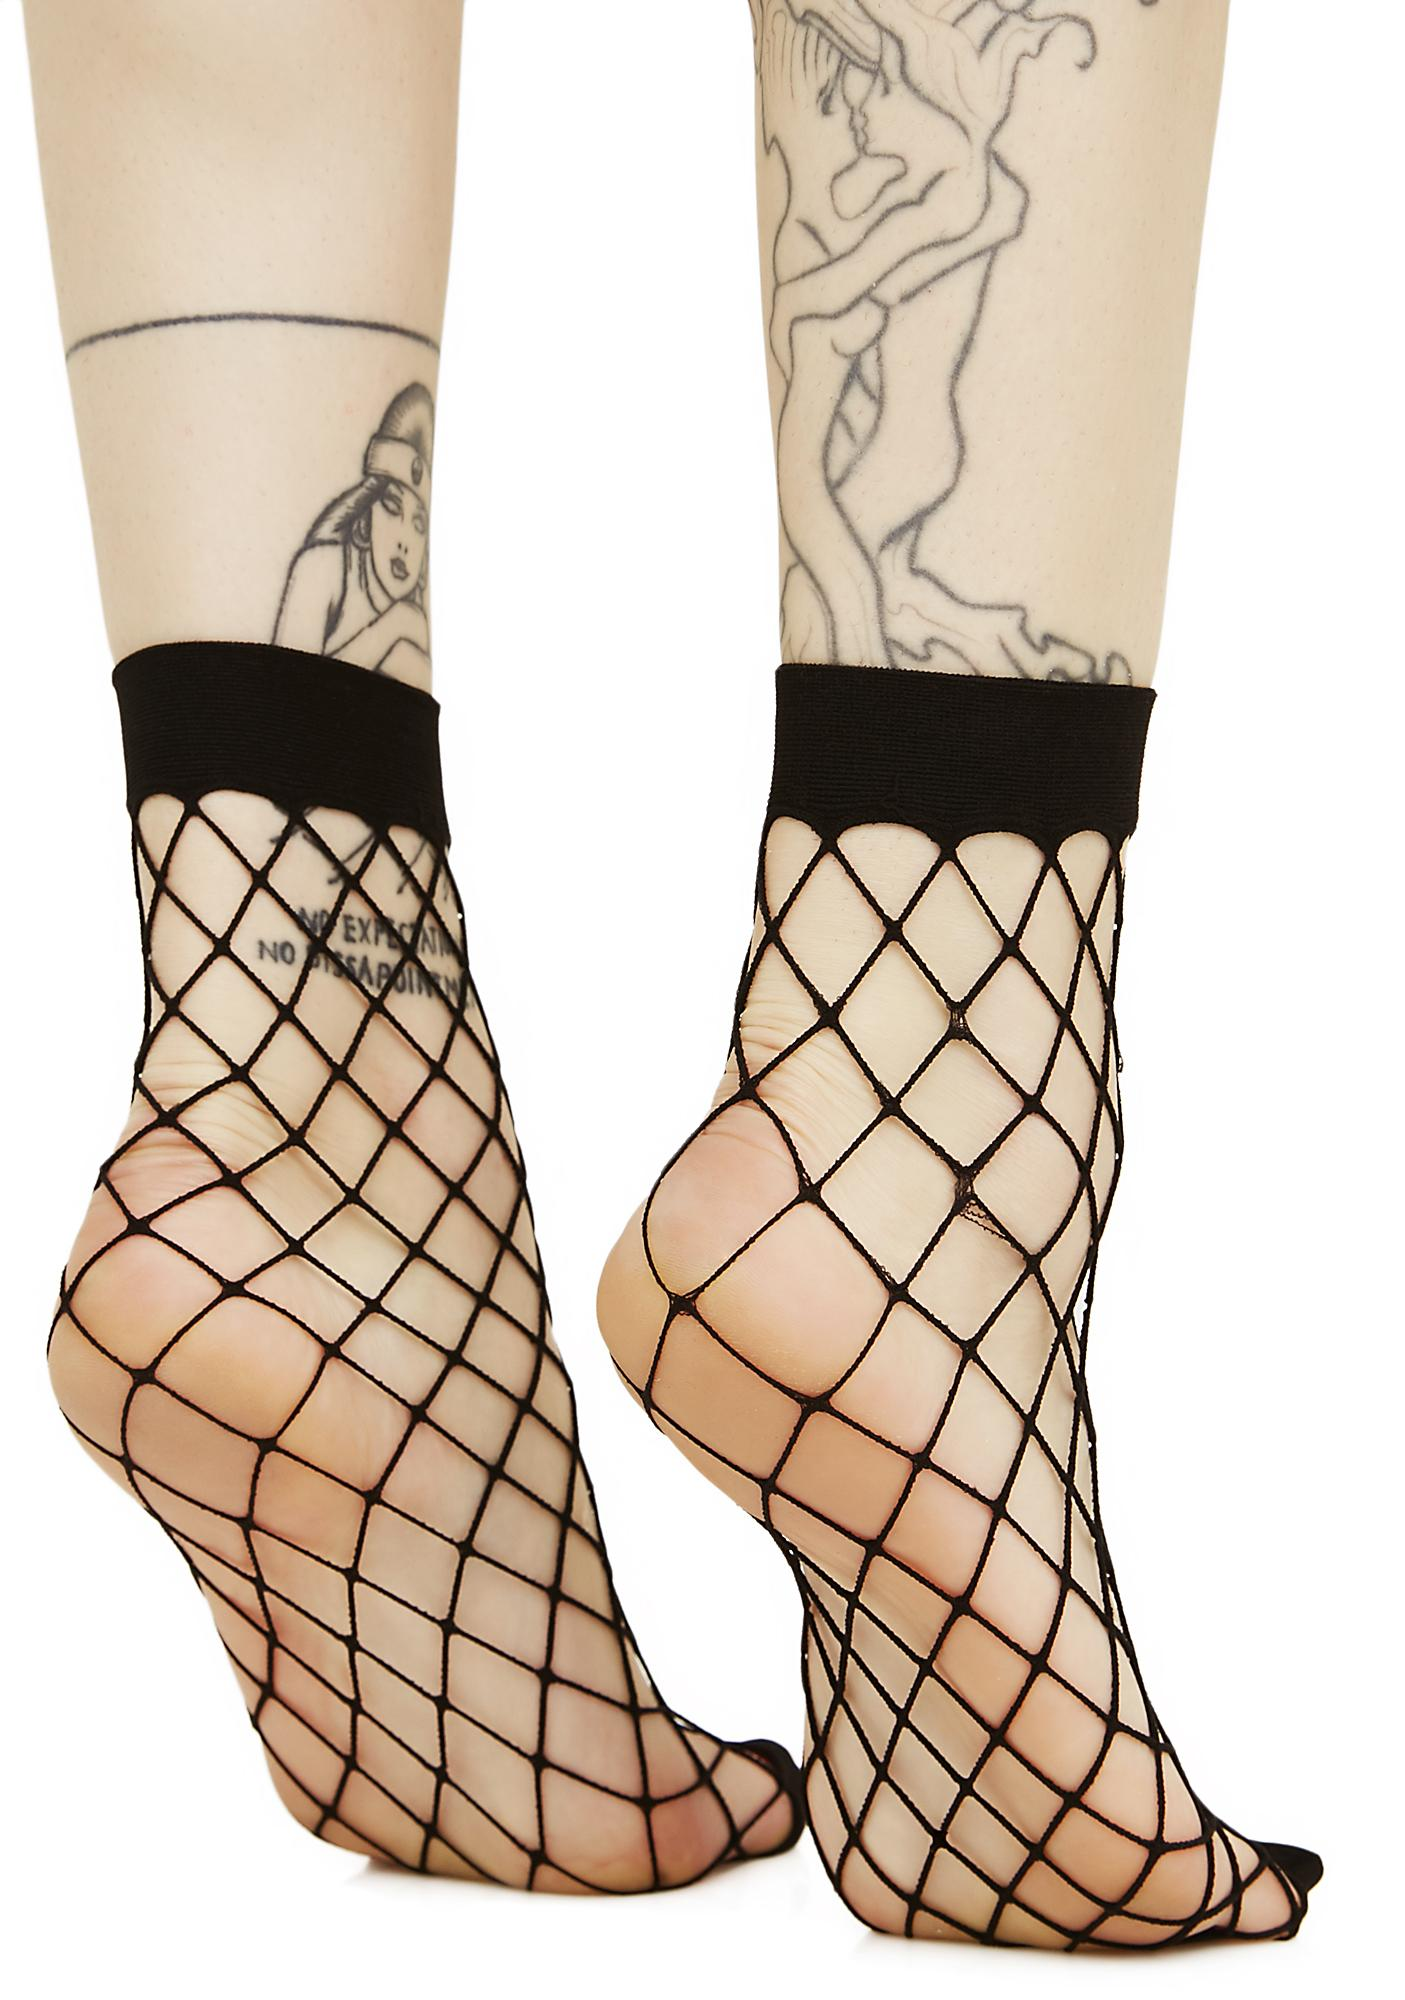 Troublemaker Fishnet Socks